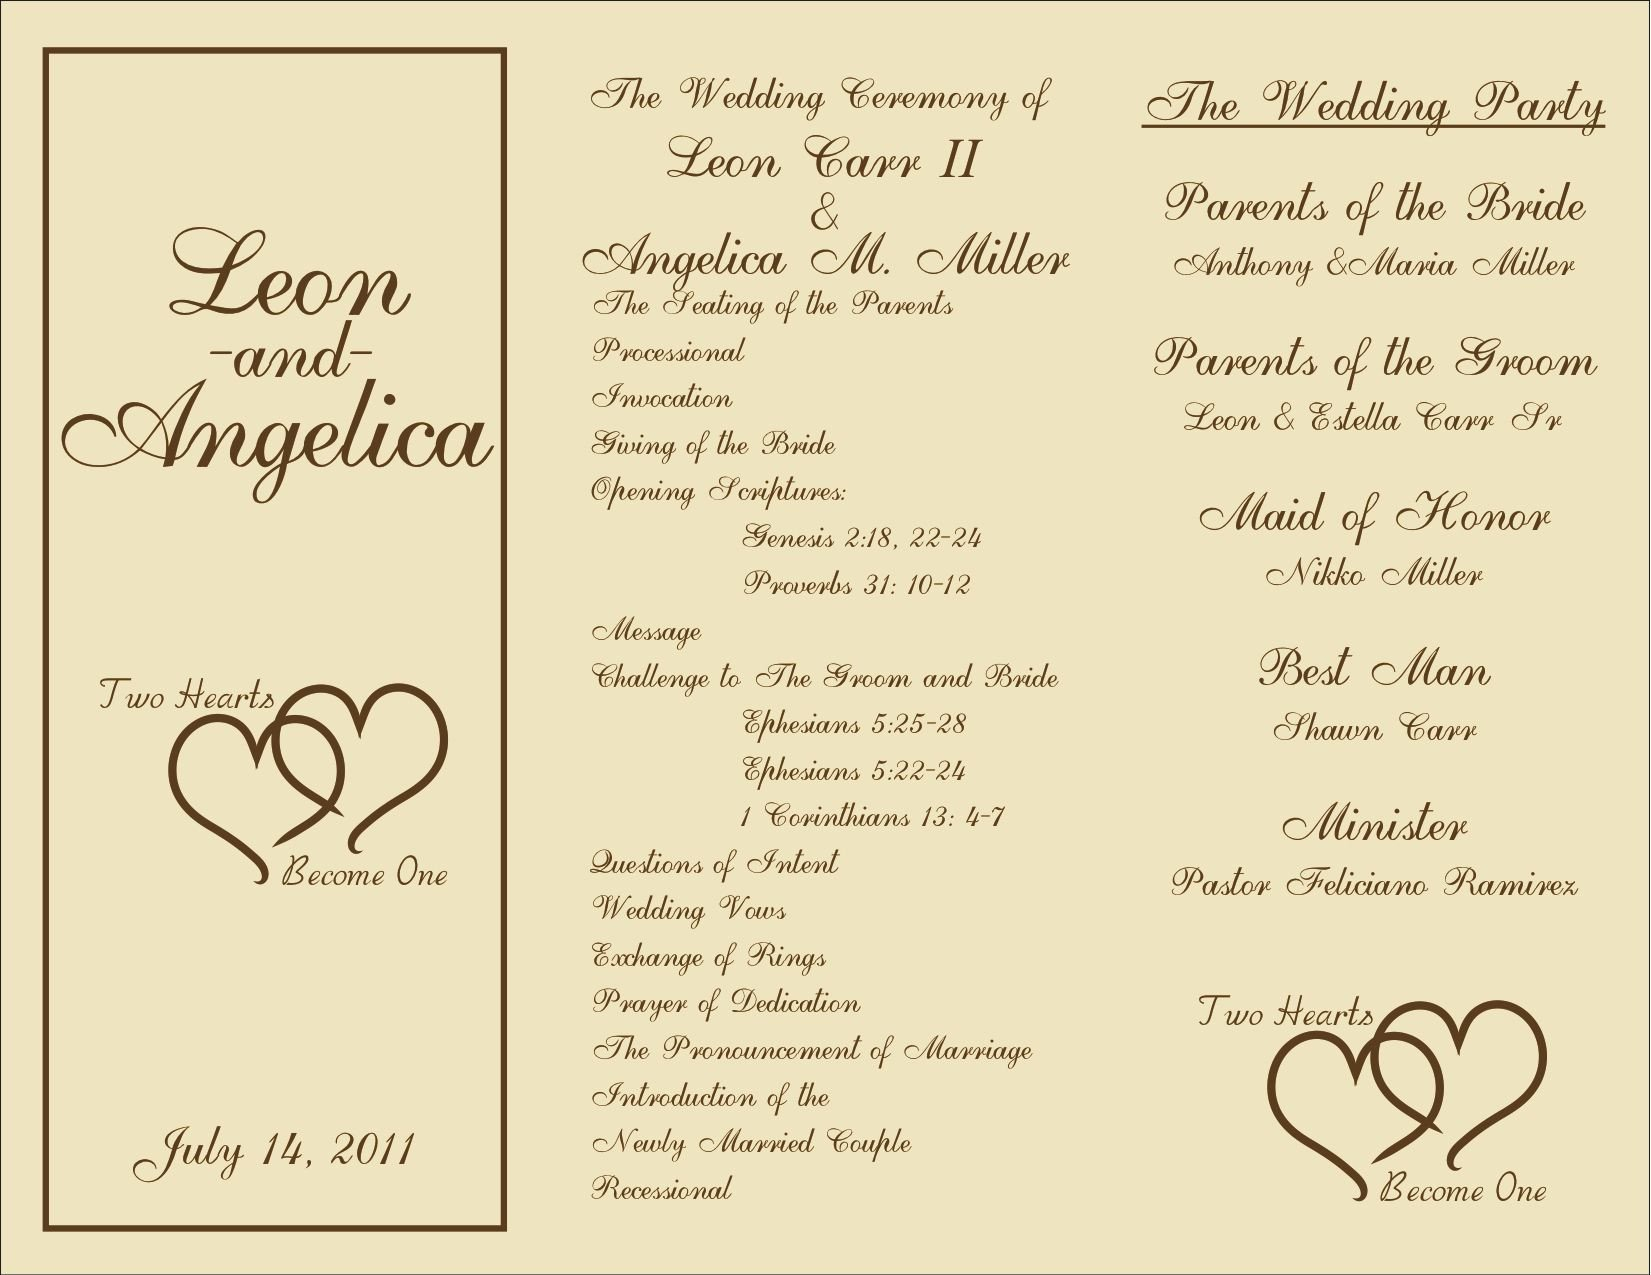 Free Downloadable Wedding Program Templates Printable Wedding Programs On Pinterest